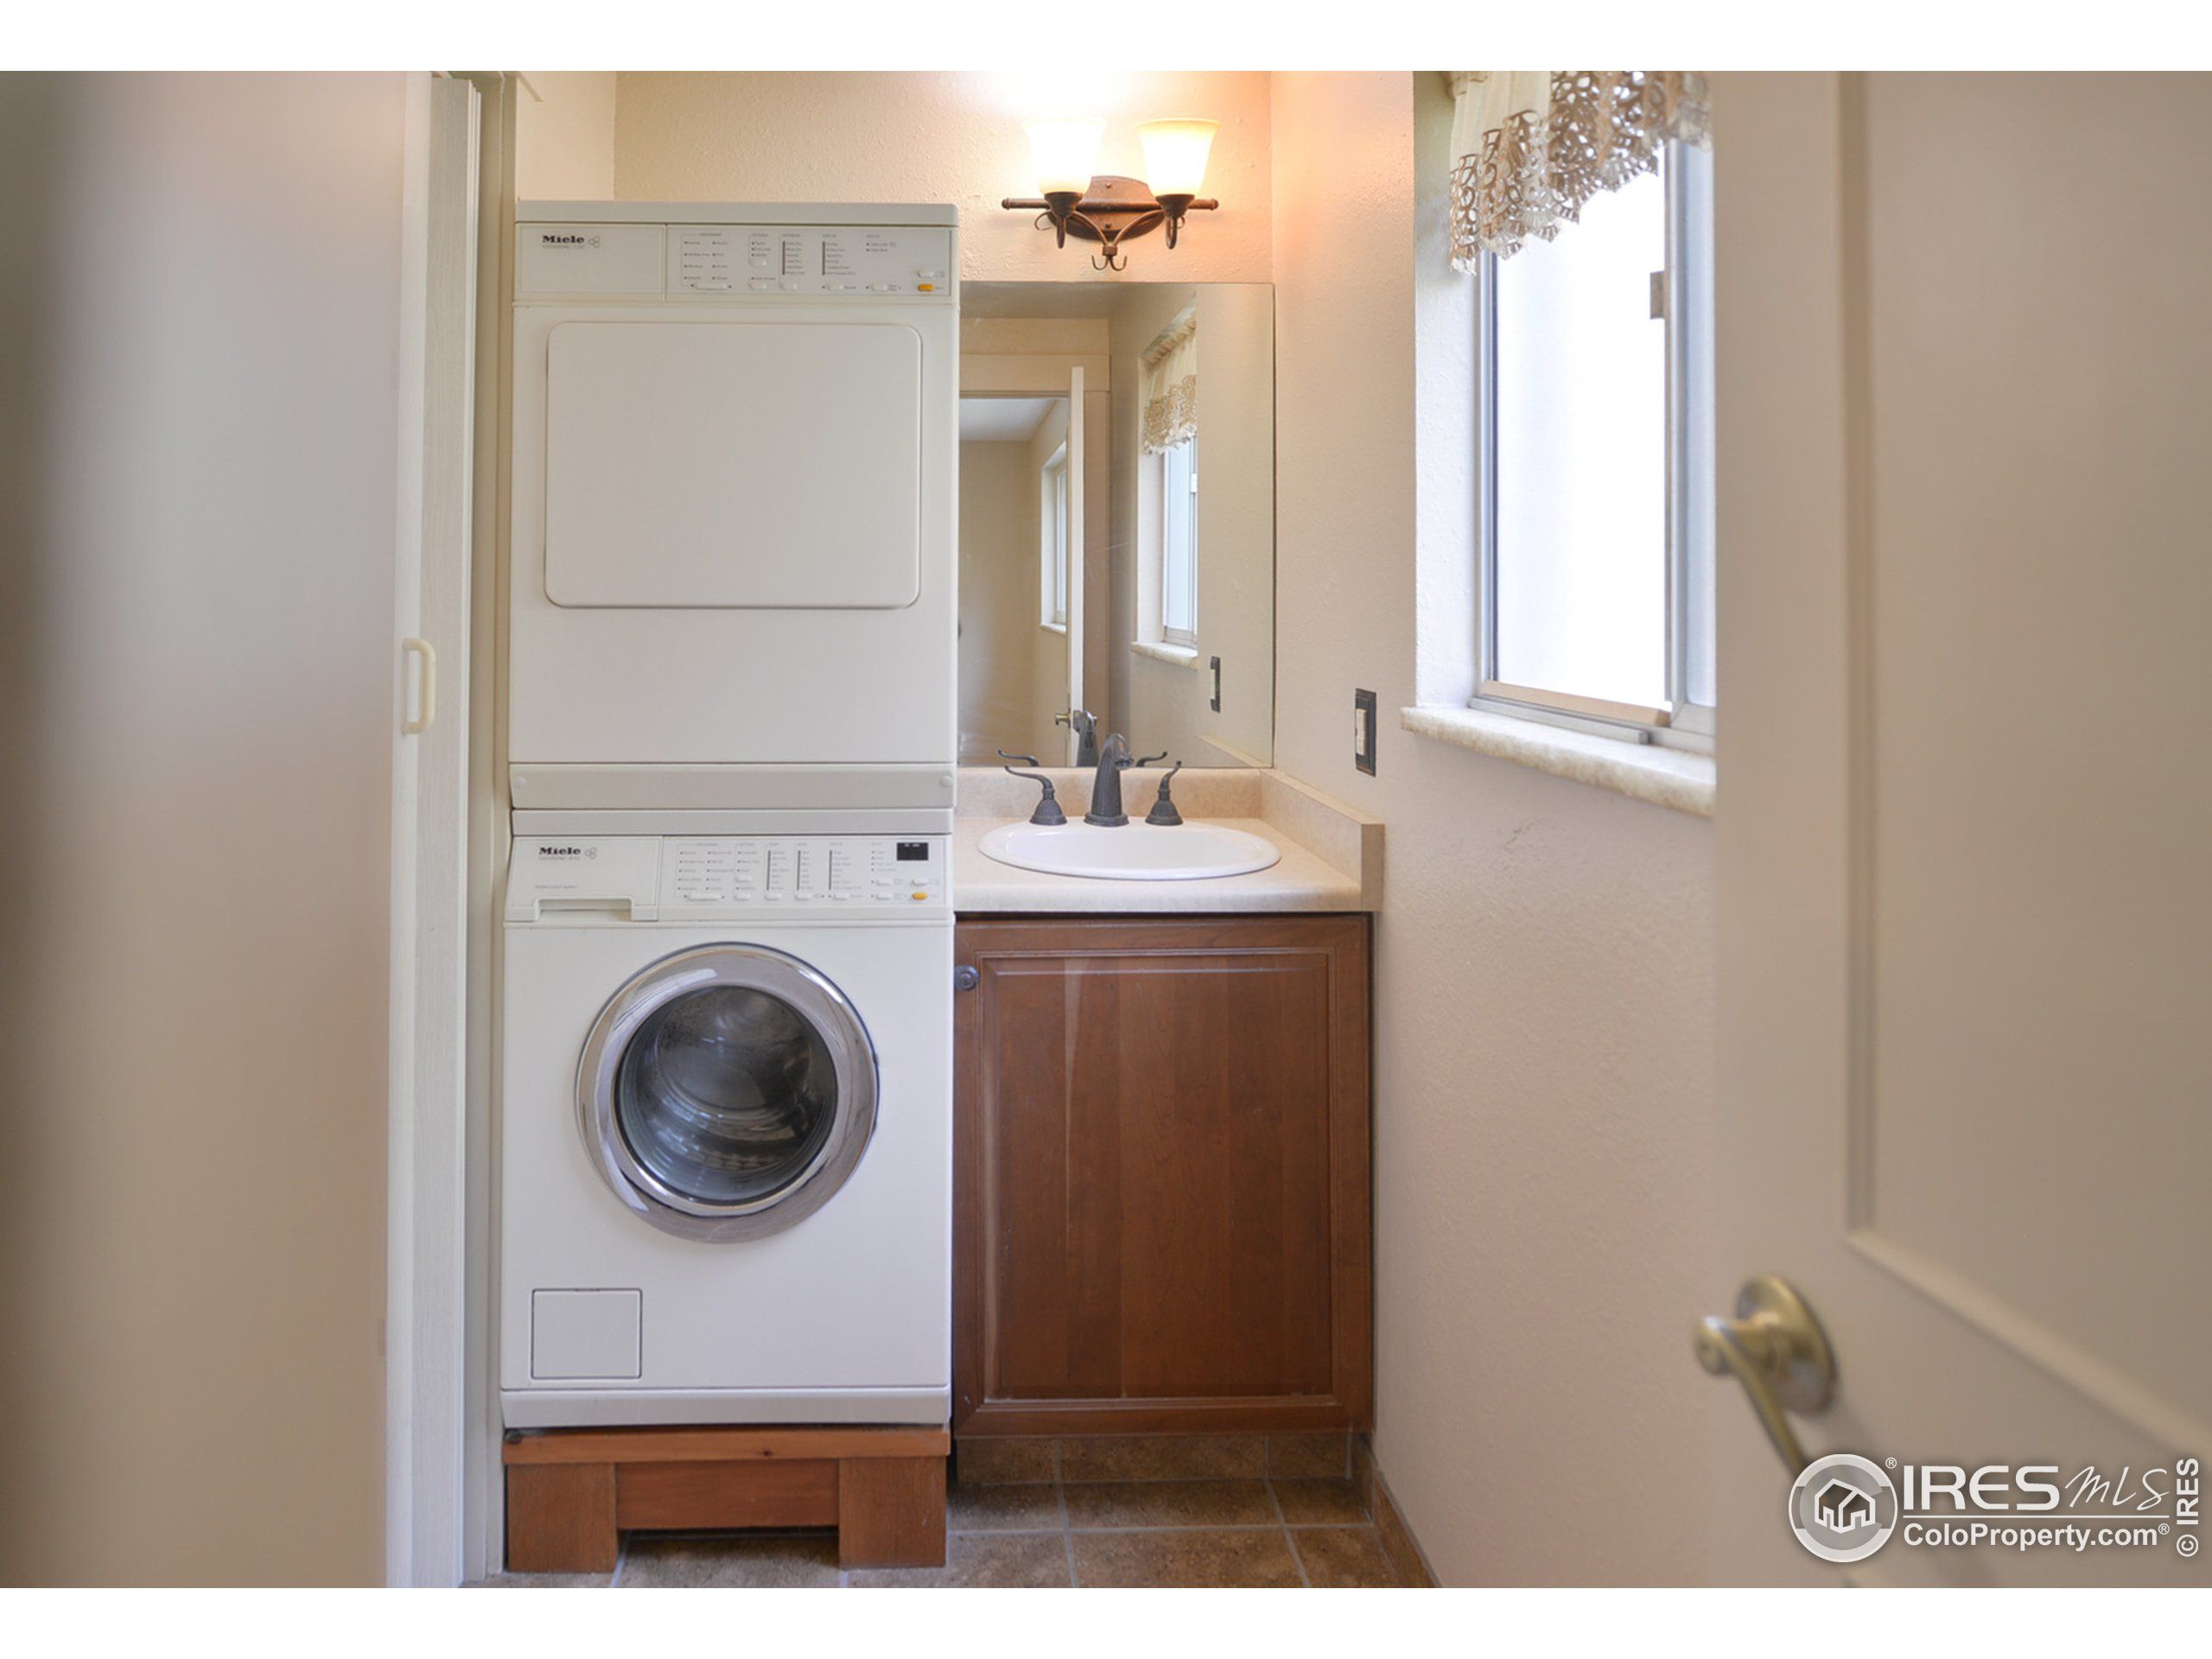 Laundry room and 2nd bath room